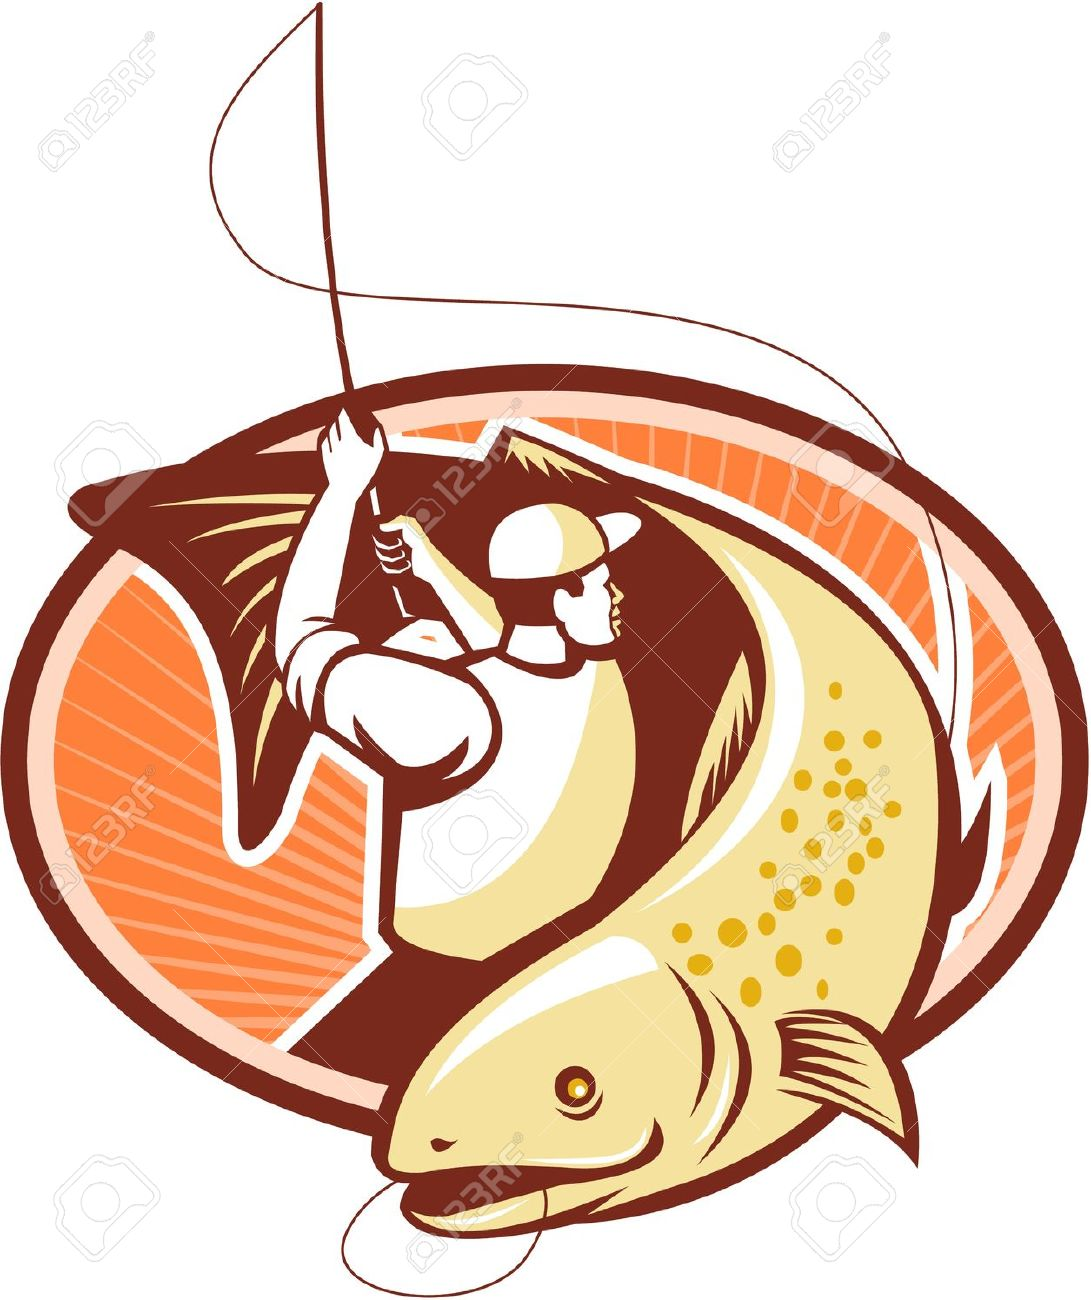 1091x1300 Fishing Rod Clipart Fishing Equipment